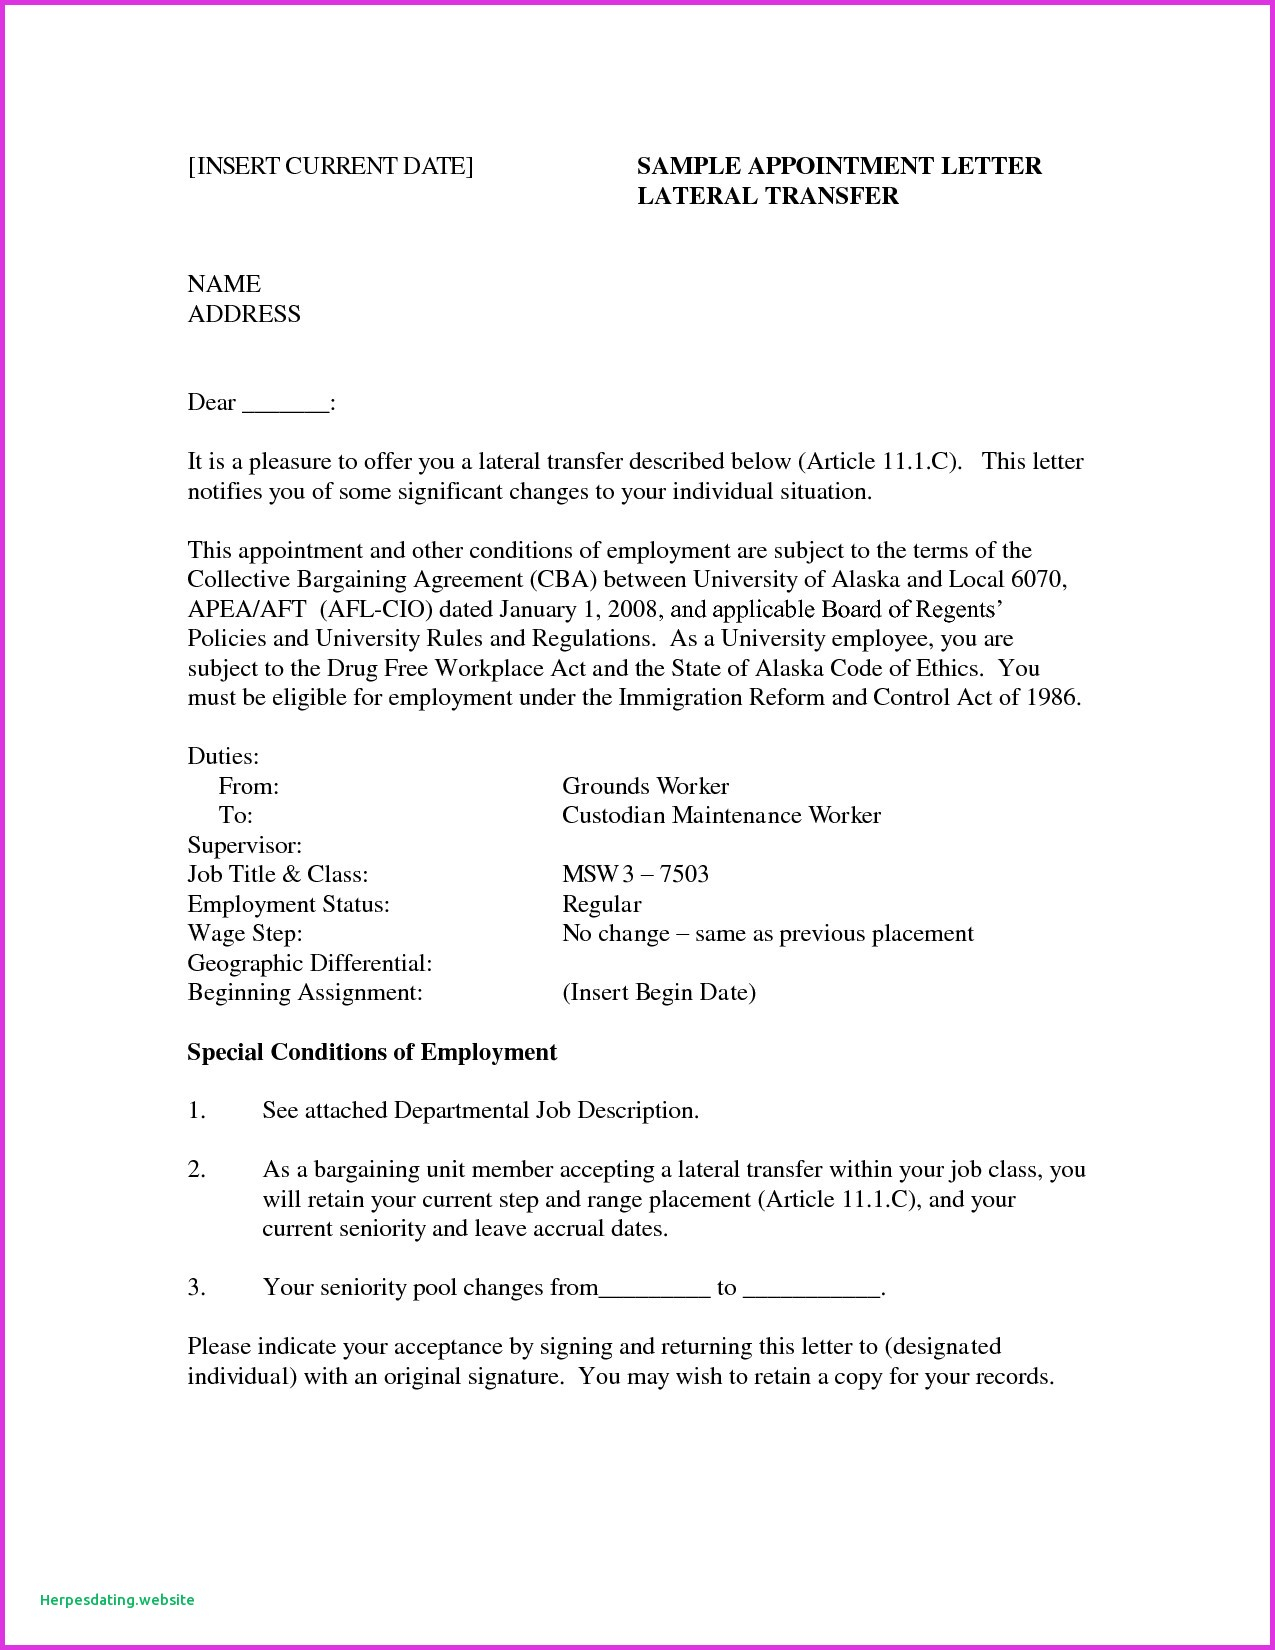 Offer Letter Template Google Docs - Inspirational Google Docs Proposal Template